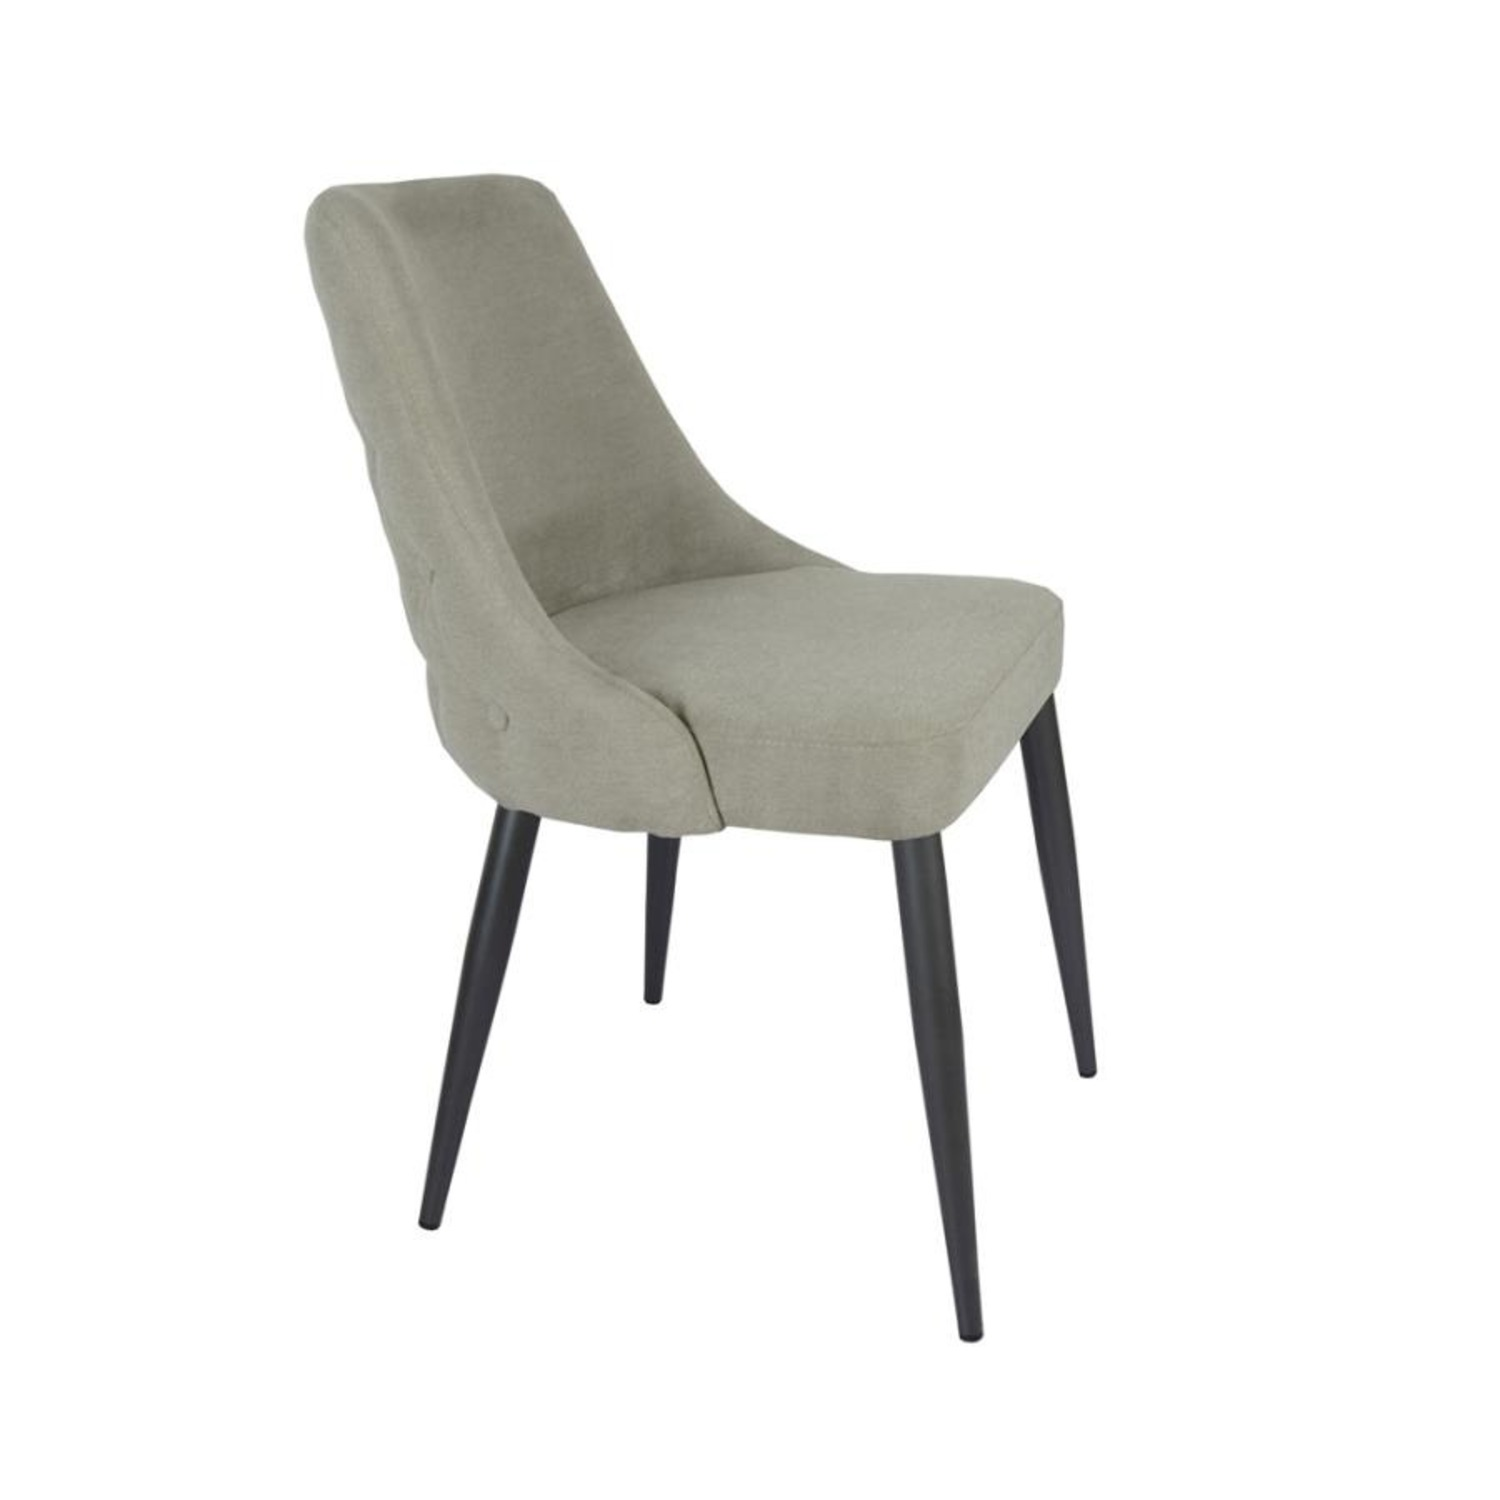 Dining Chair In Off White Microfiber W/Curved Back - image-1